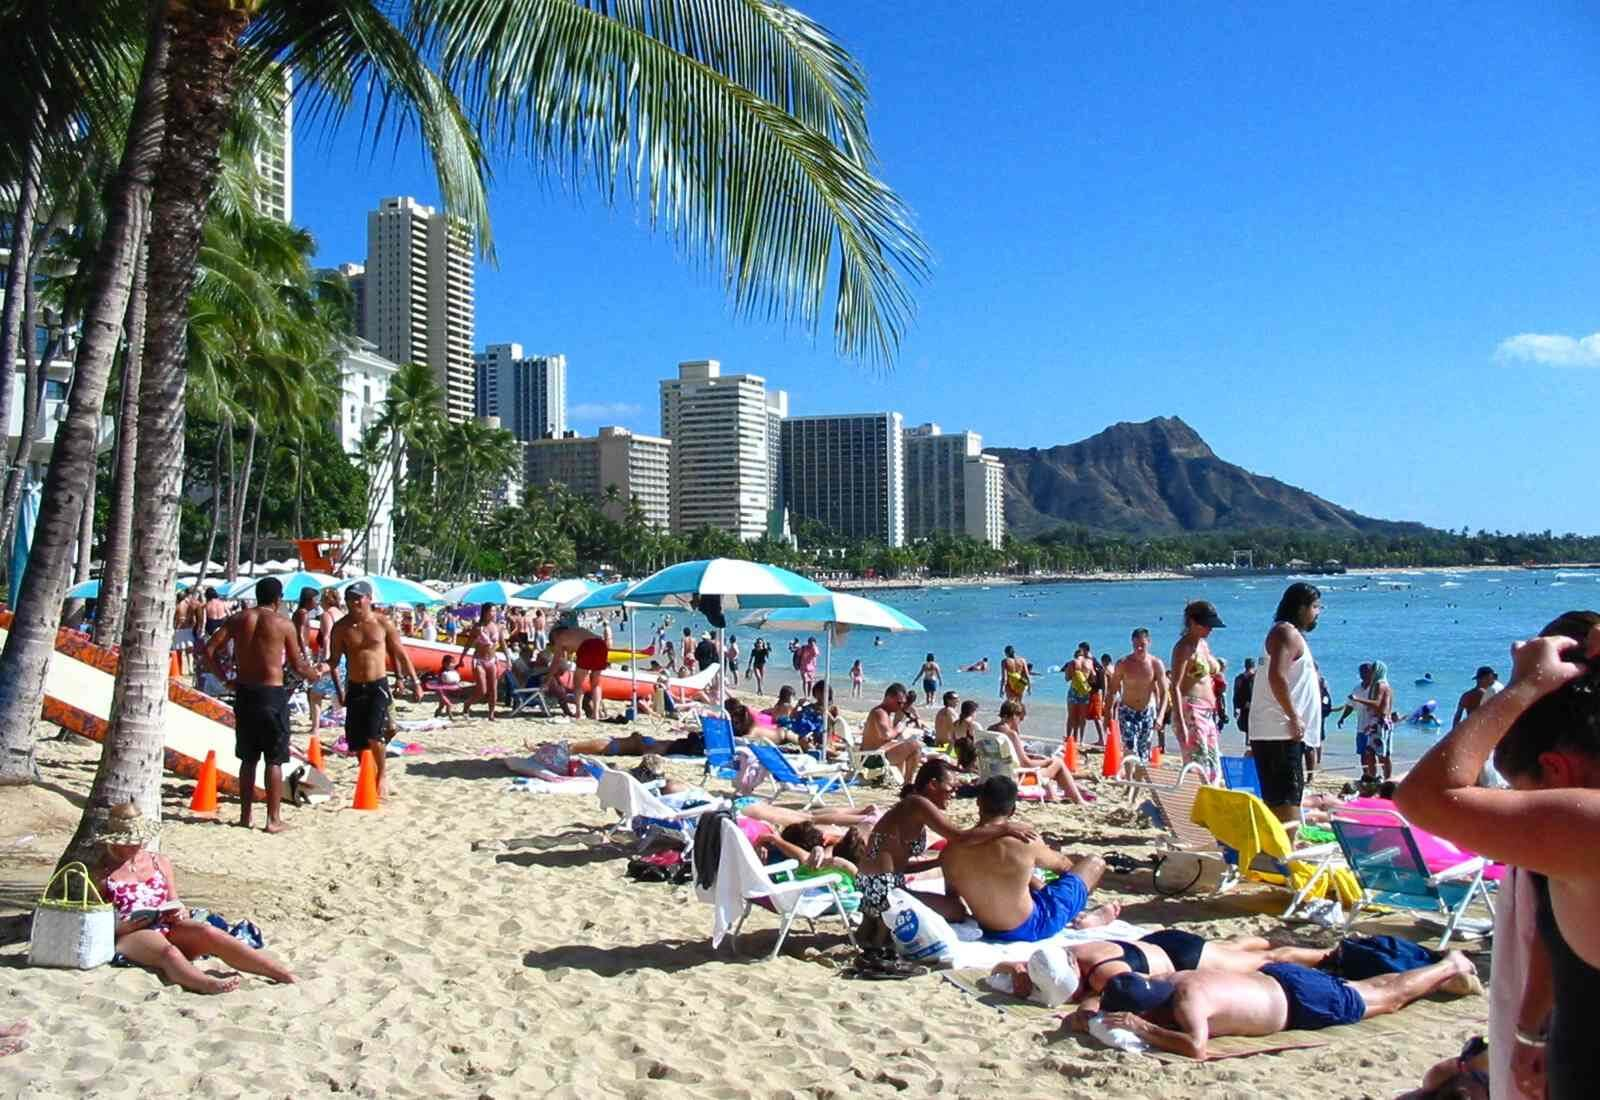 Hawaii hotels report lower revenue, lower occupancy, higher daily rate in April 2019